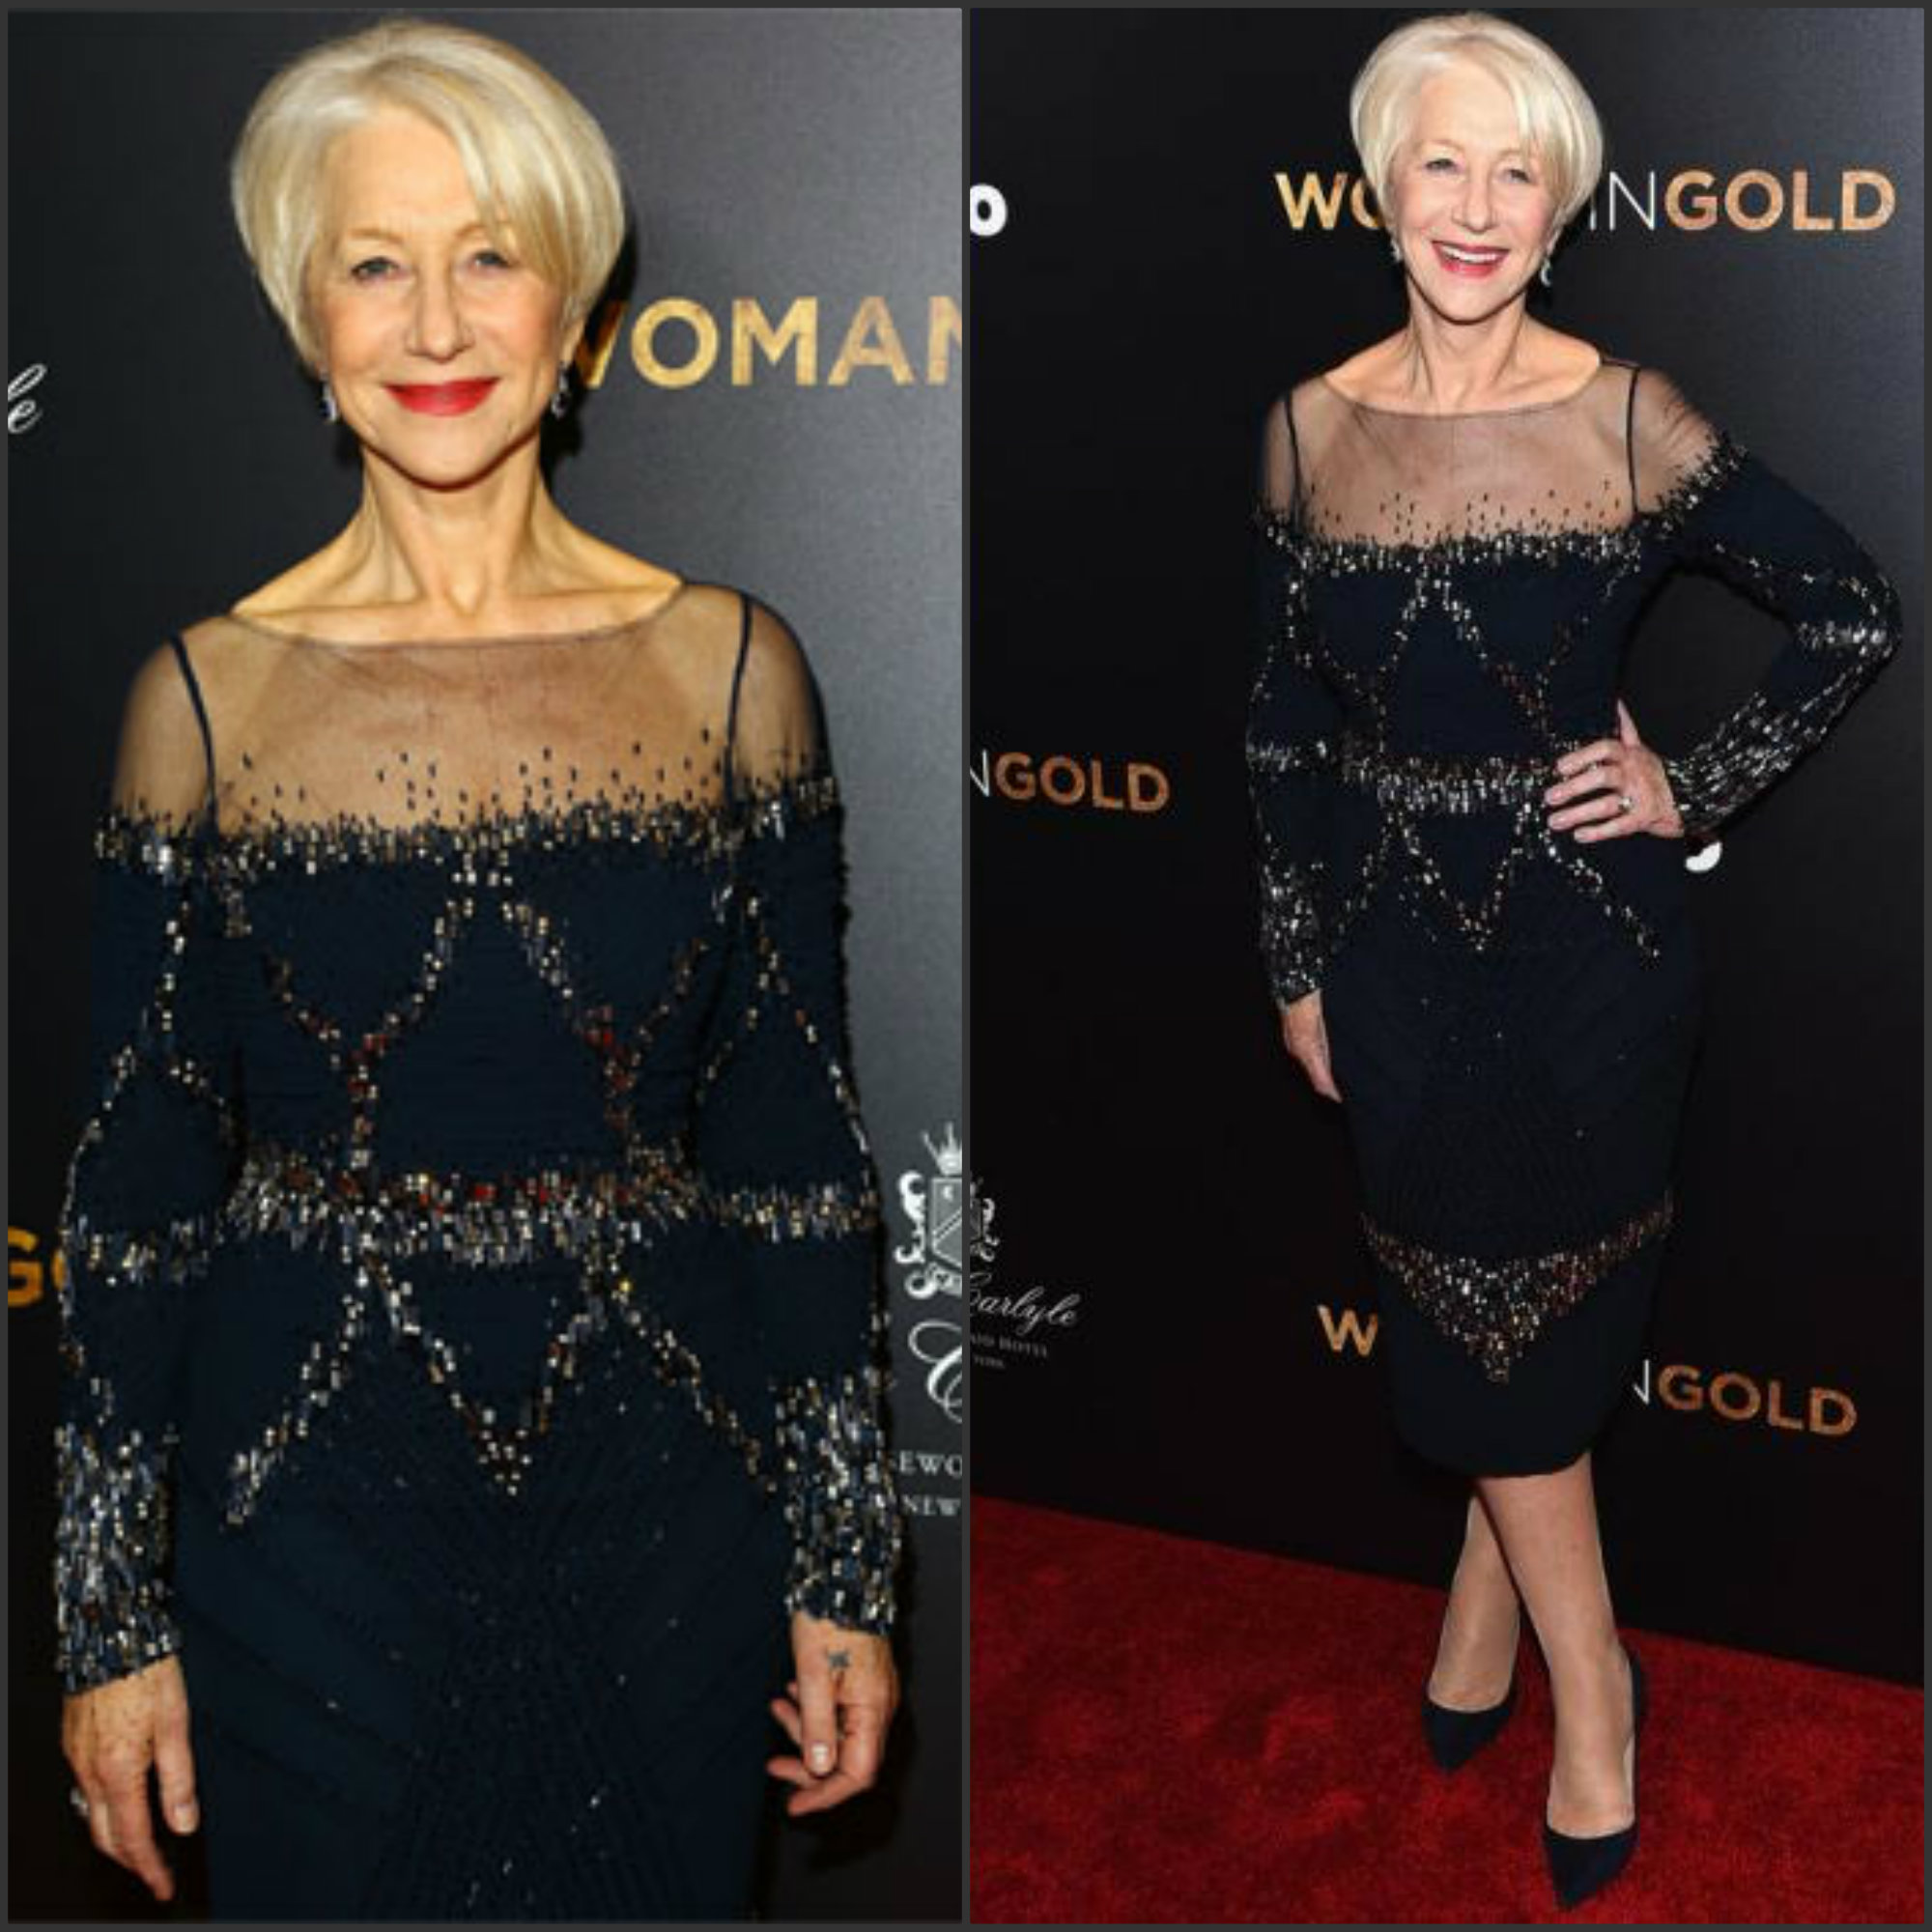 Helen-Mirren-in-Badgley-Mischka-at-Woman-in-Gold-New-York-Premiere